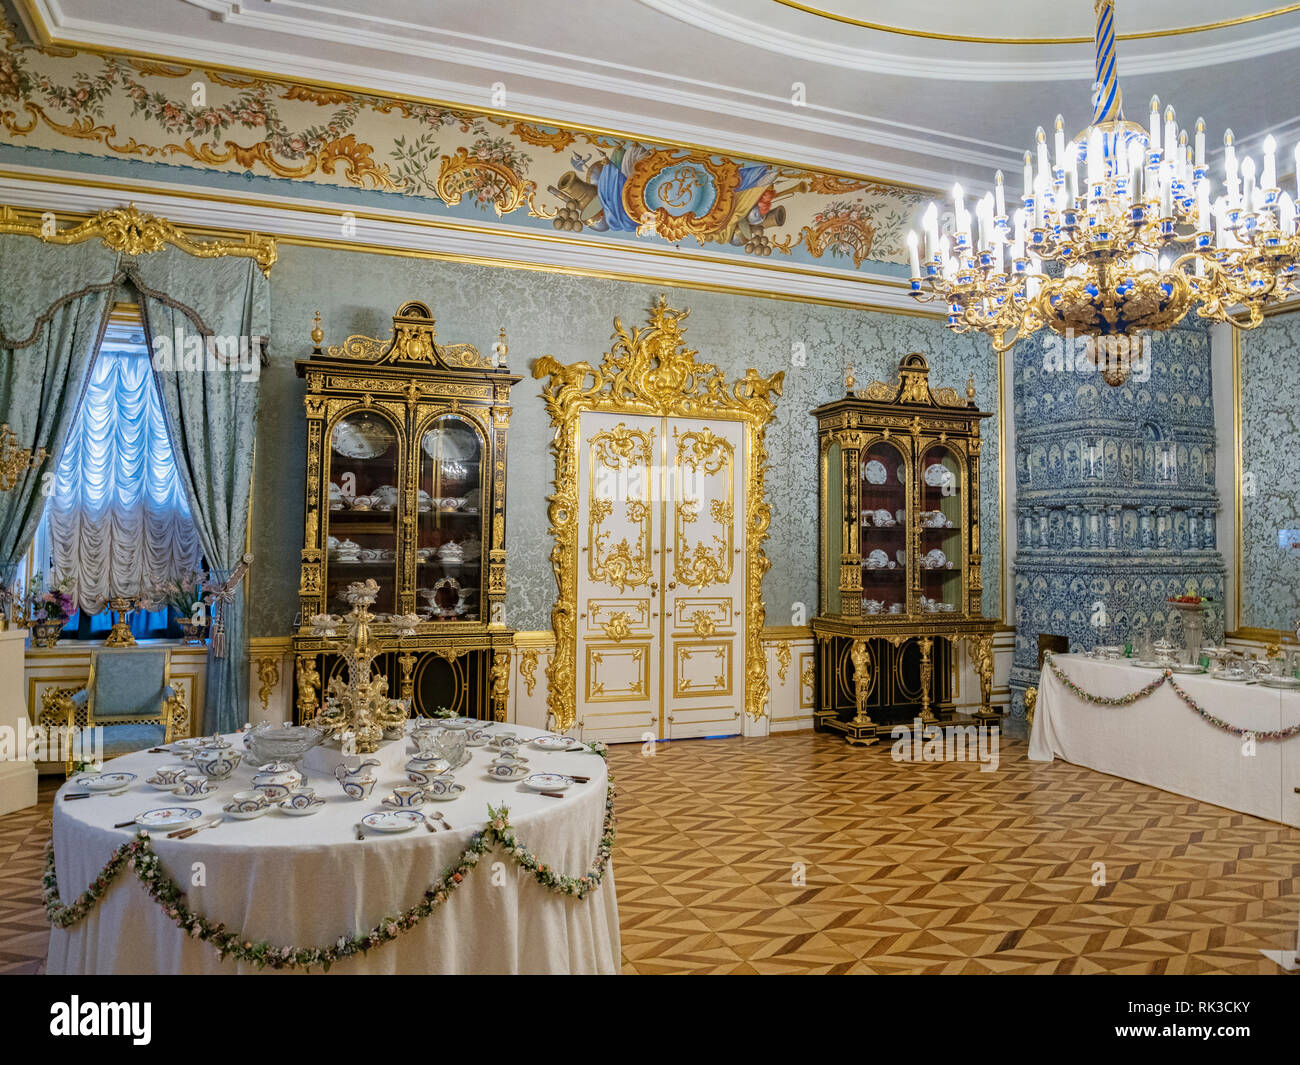 18 September 2018: St Petersburg, Russia - An ornate room in the Peterhof Palace, with chandelier and table set for tea. - Stock Photo